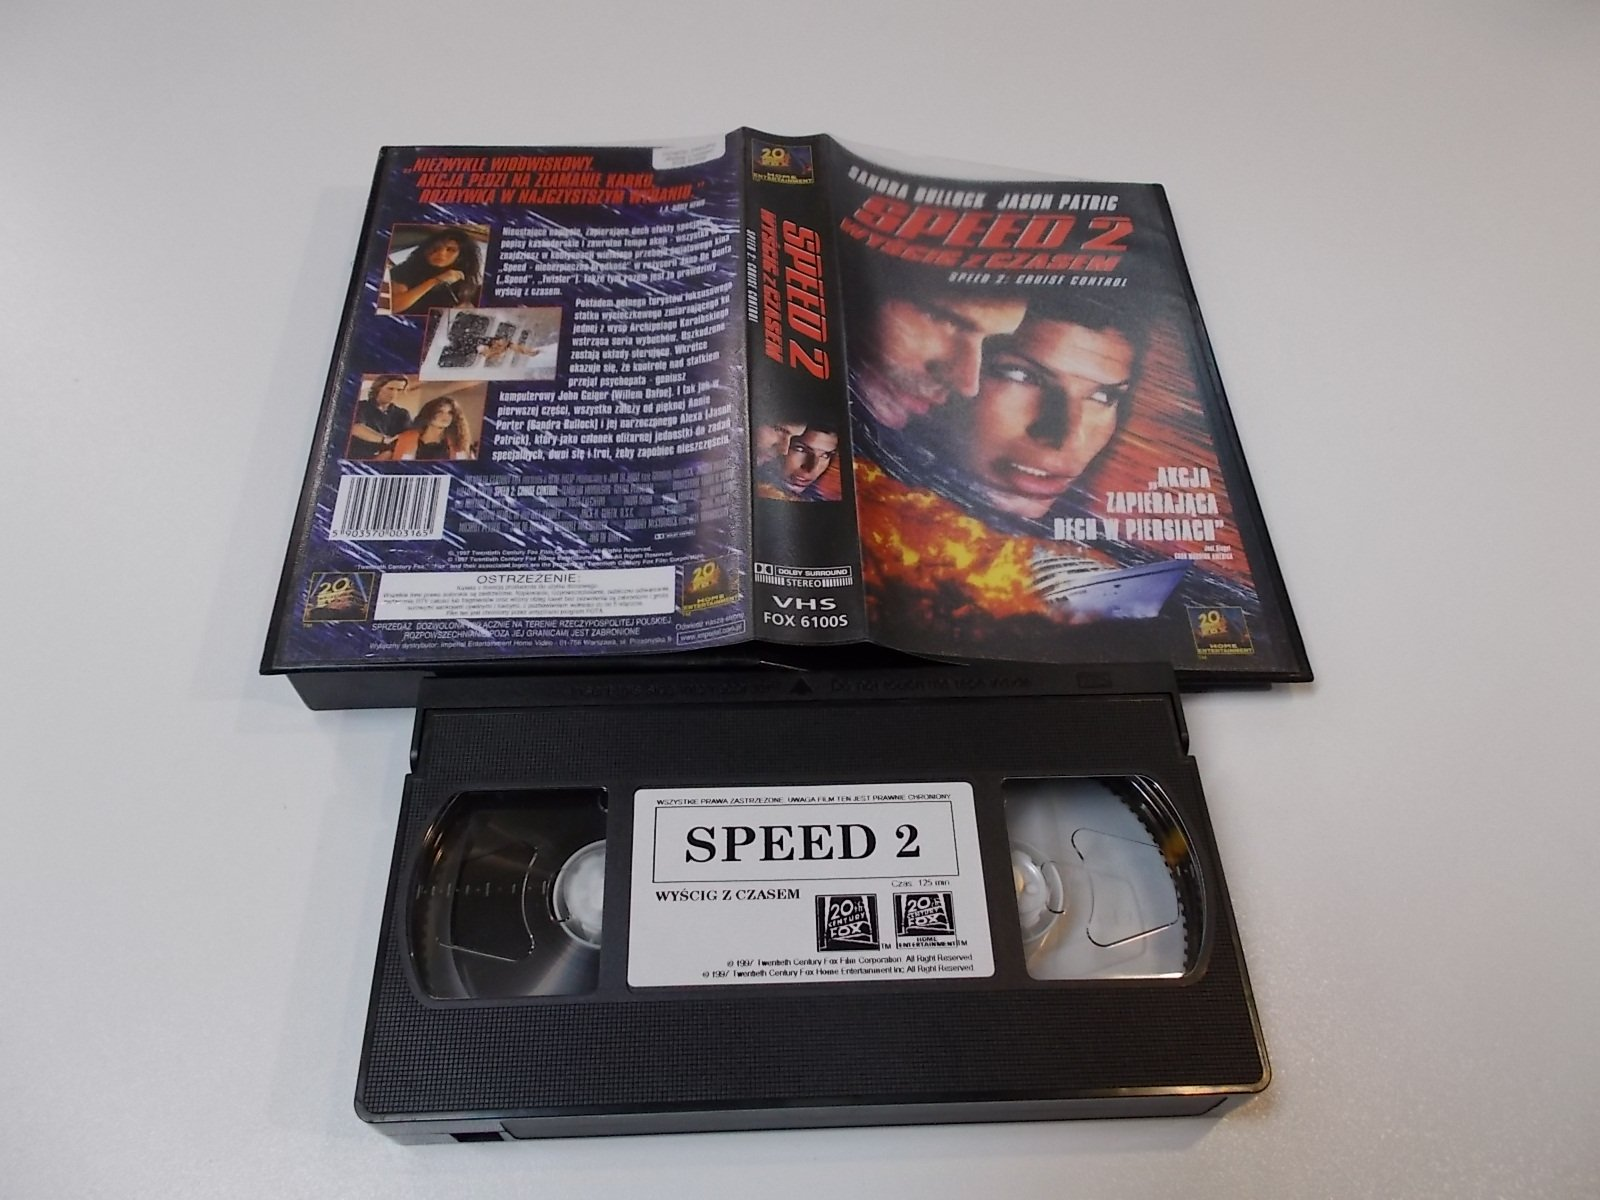 SPEED 2 WYŚCIG Z CZASEM - VHS Kaseta Video - Opole 1684